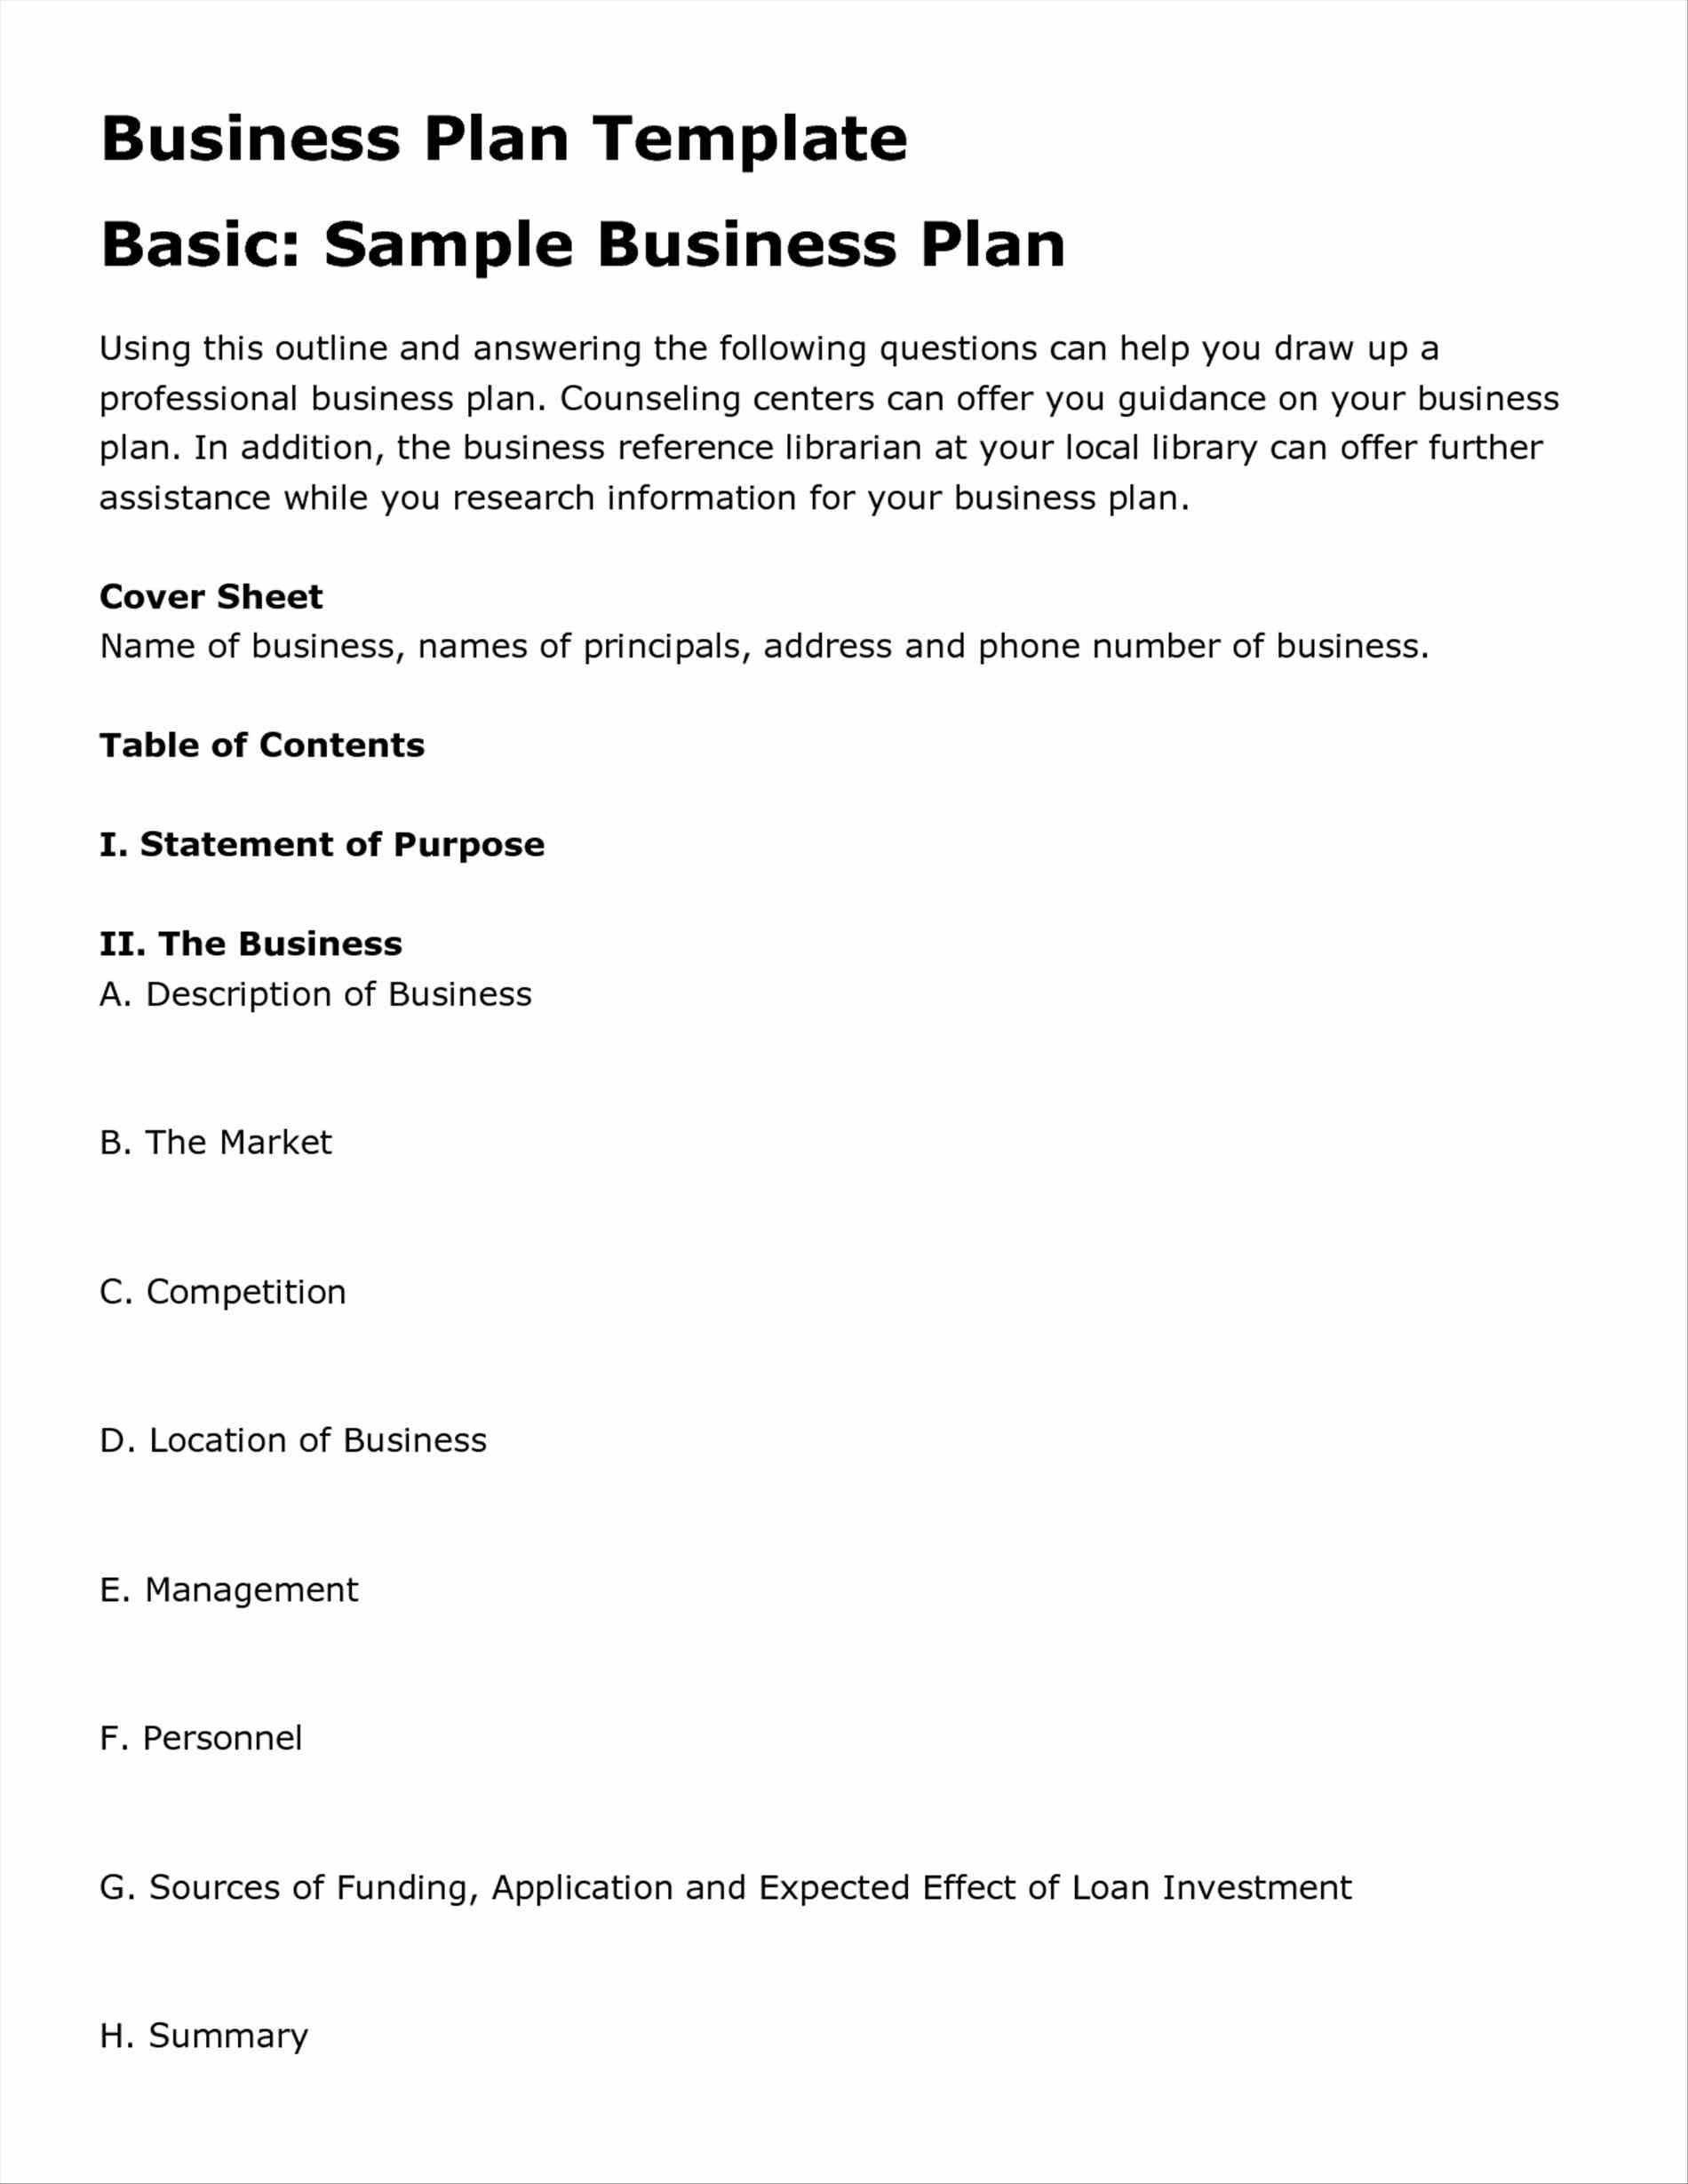 Business plan template restaurant templates in word excel pdf free business plan template restaurant templates in word excel pdf free cafe business plan template restaurant business plan templates in word excel friedricerecipe Choice Image